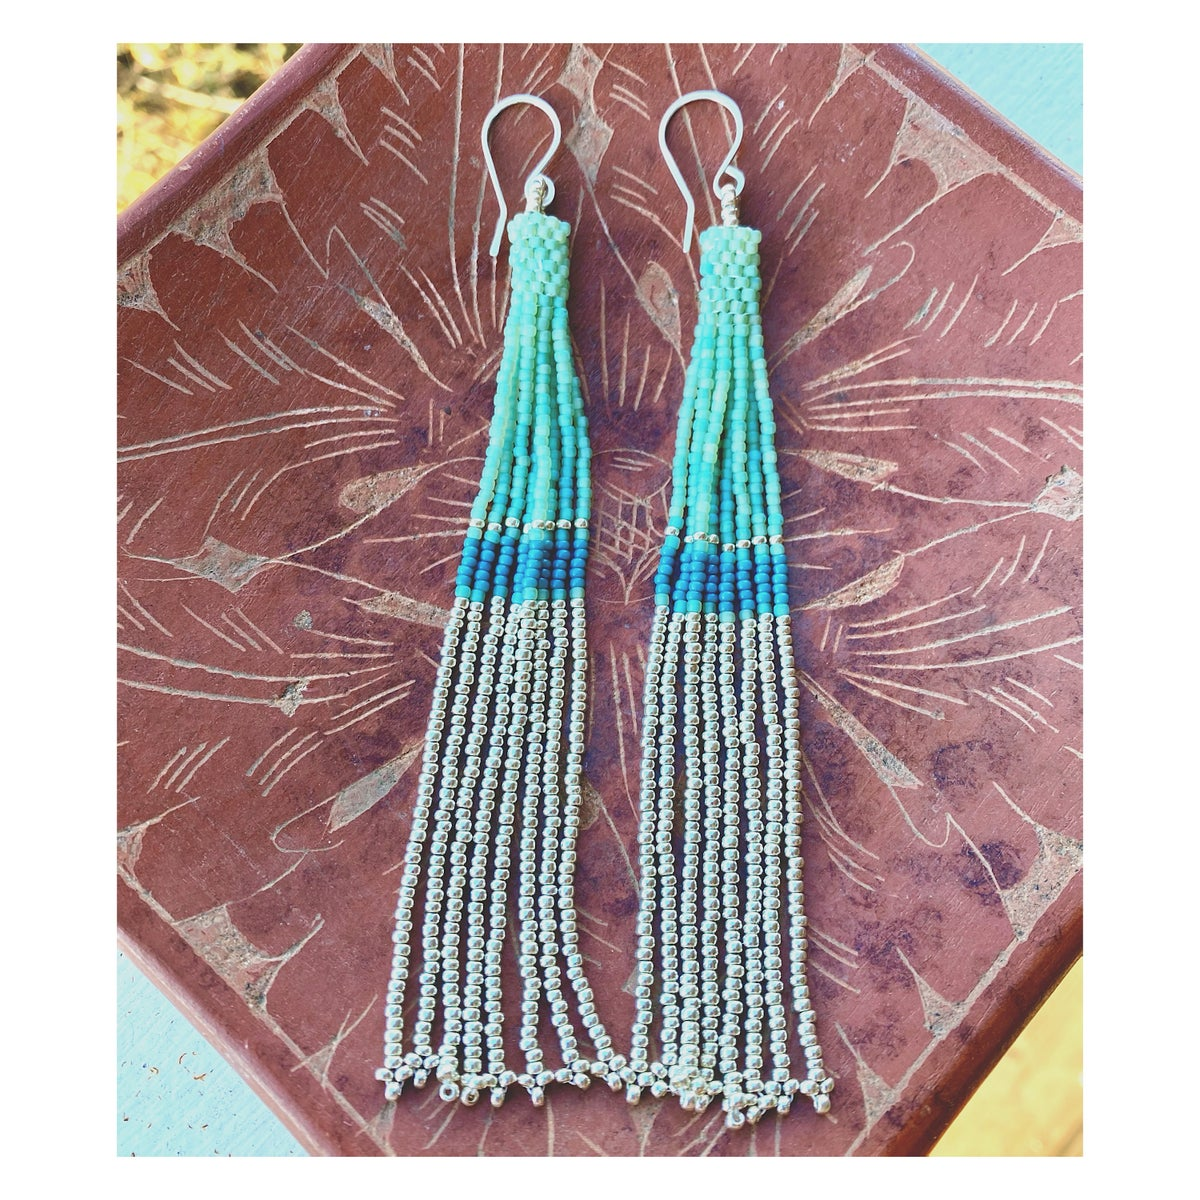 Image of Seafoam + Silver Cylinder Beads